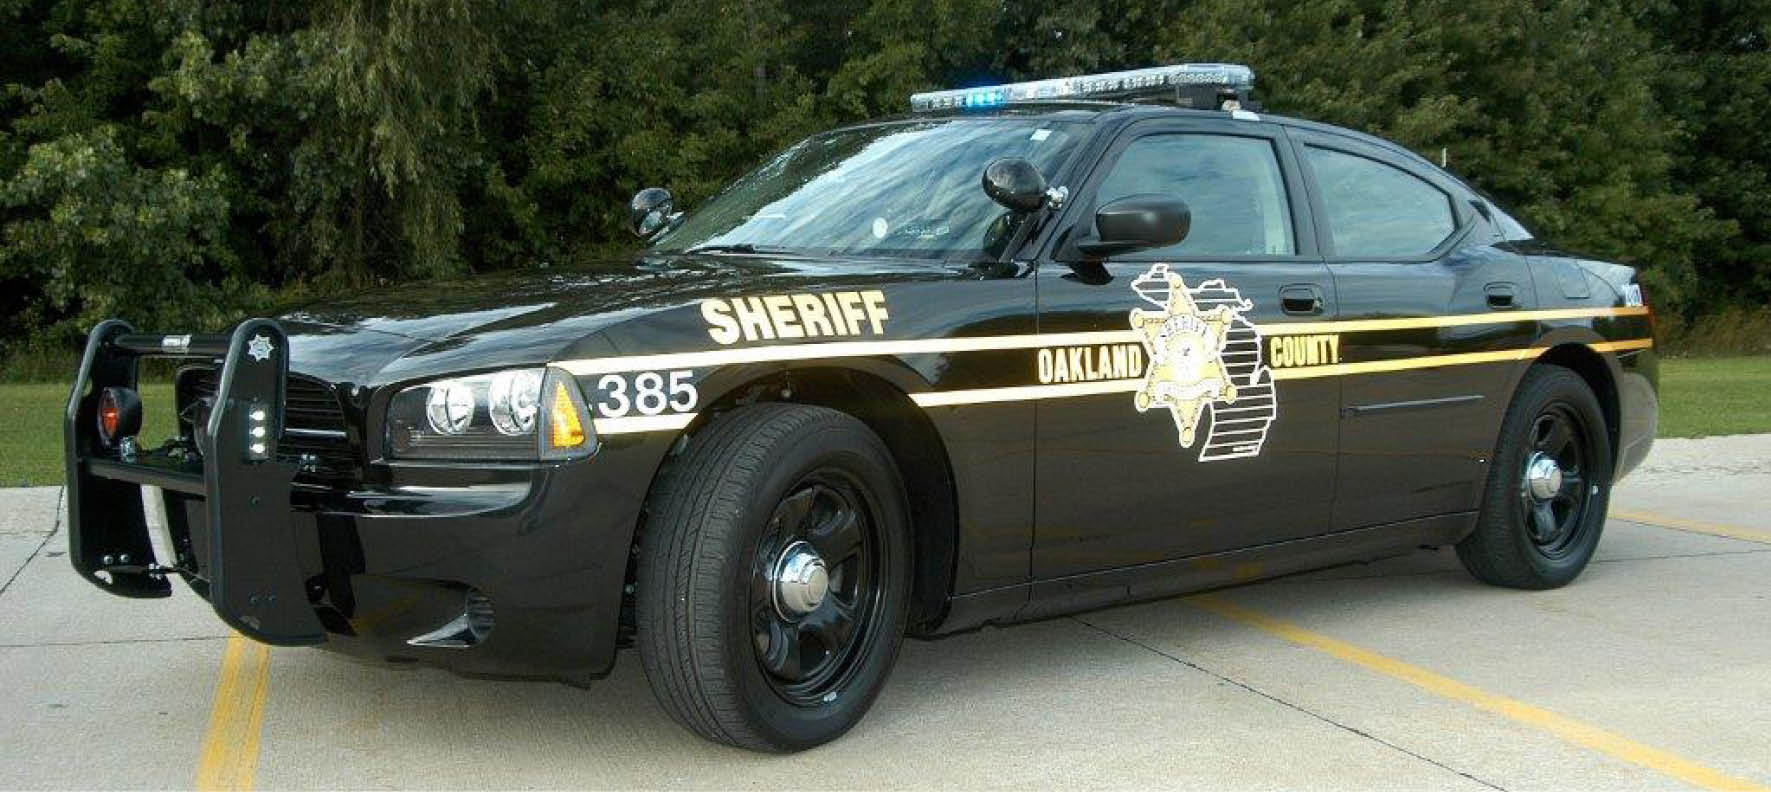 Oakland County Sheriff Patrol Car